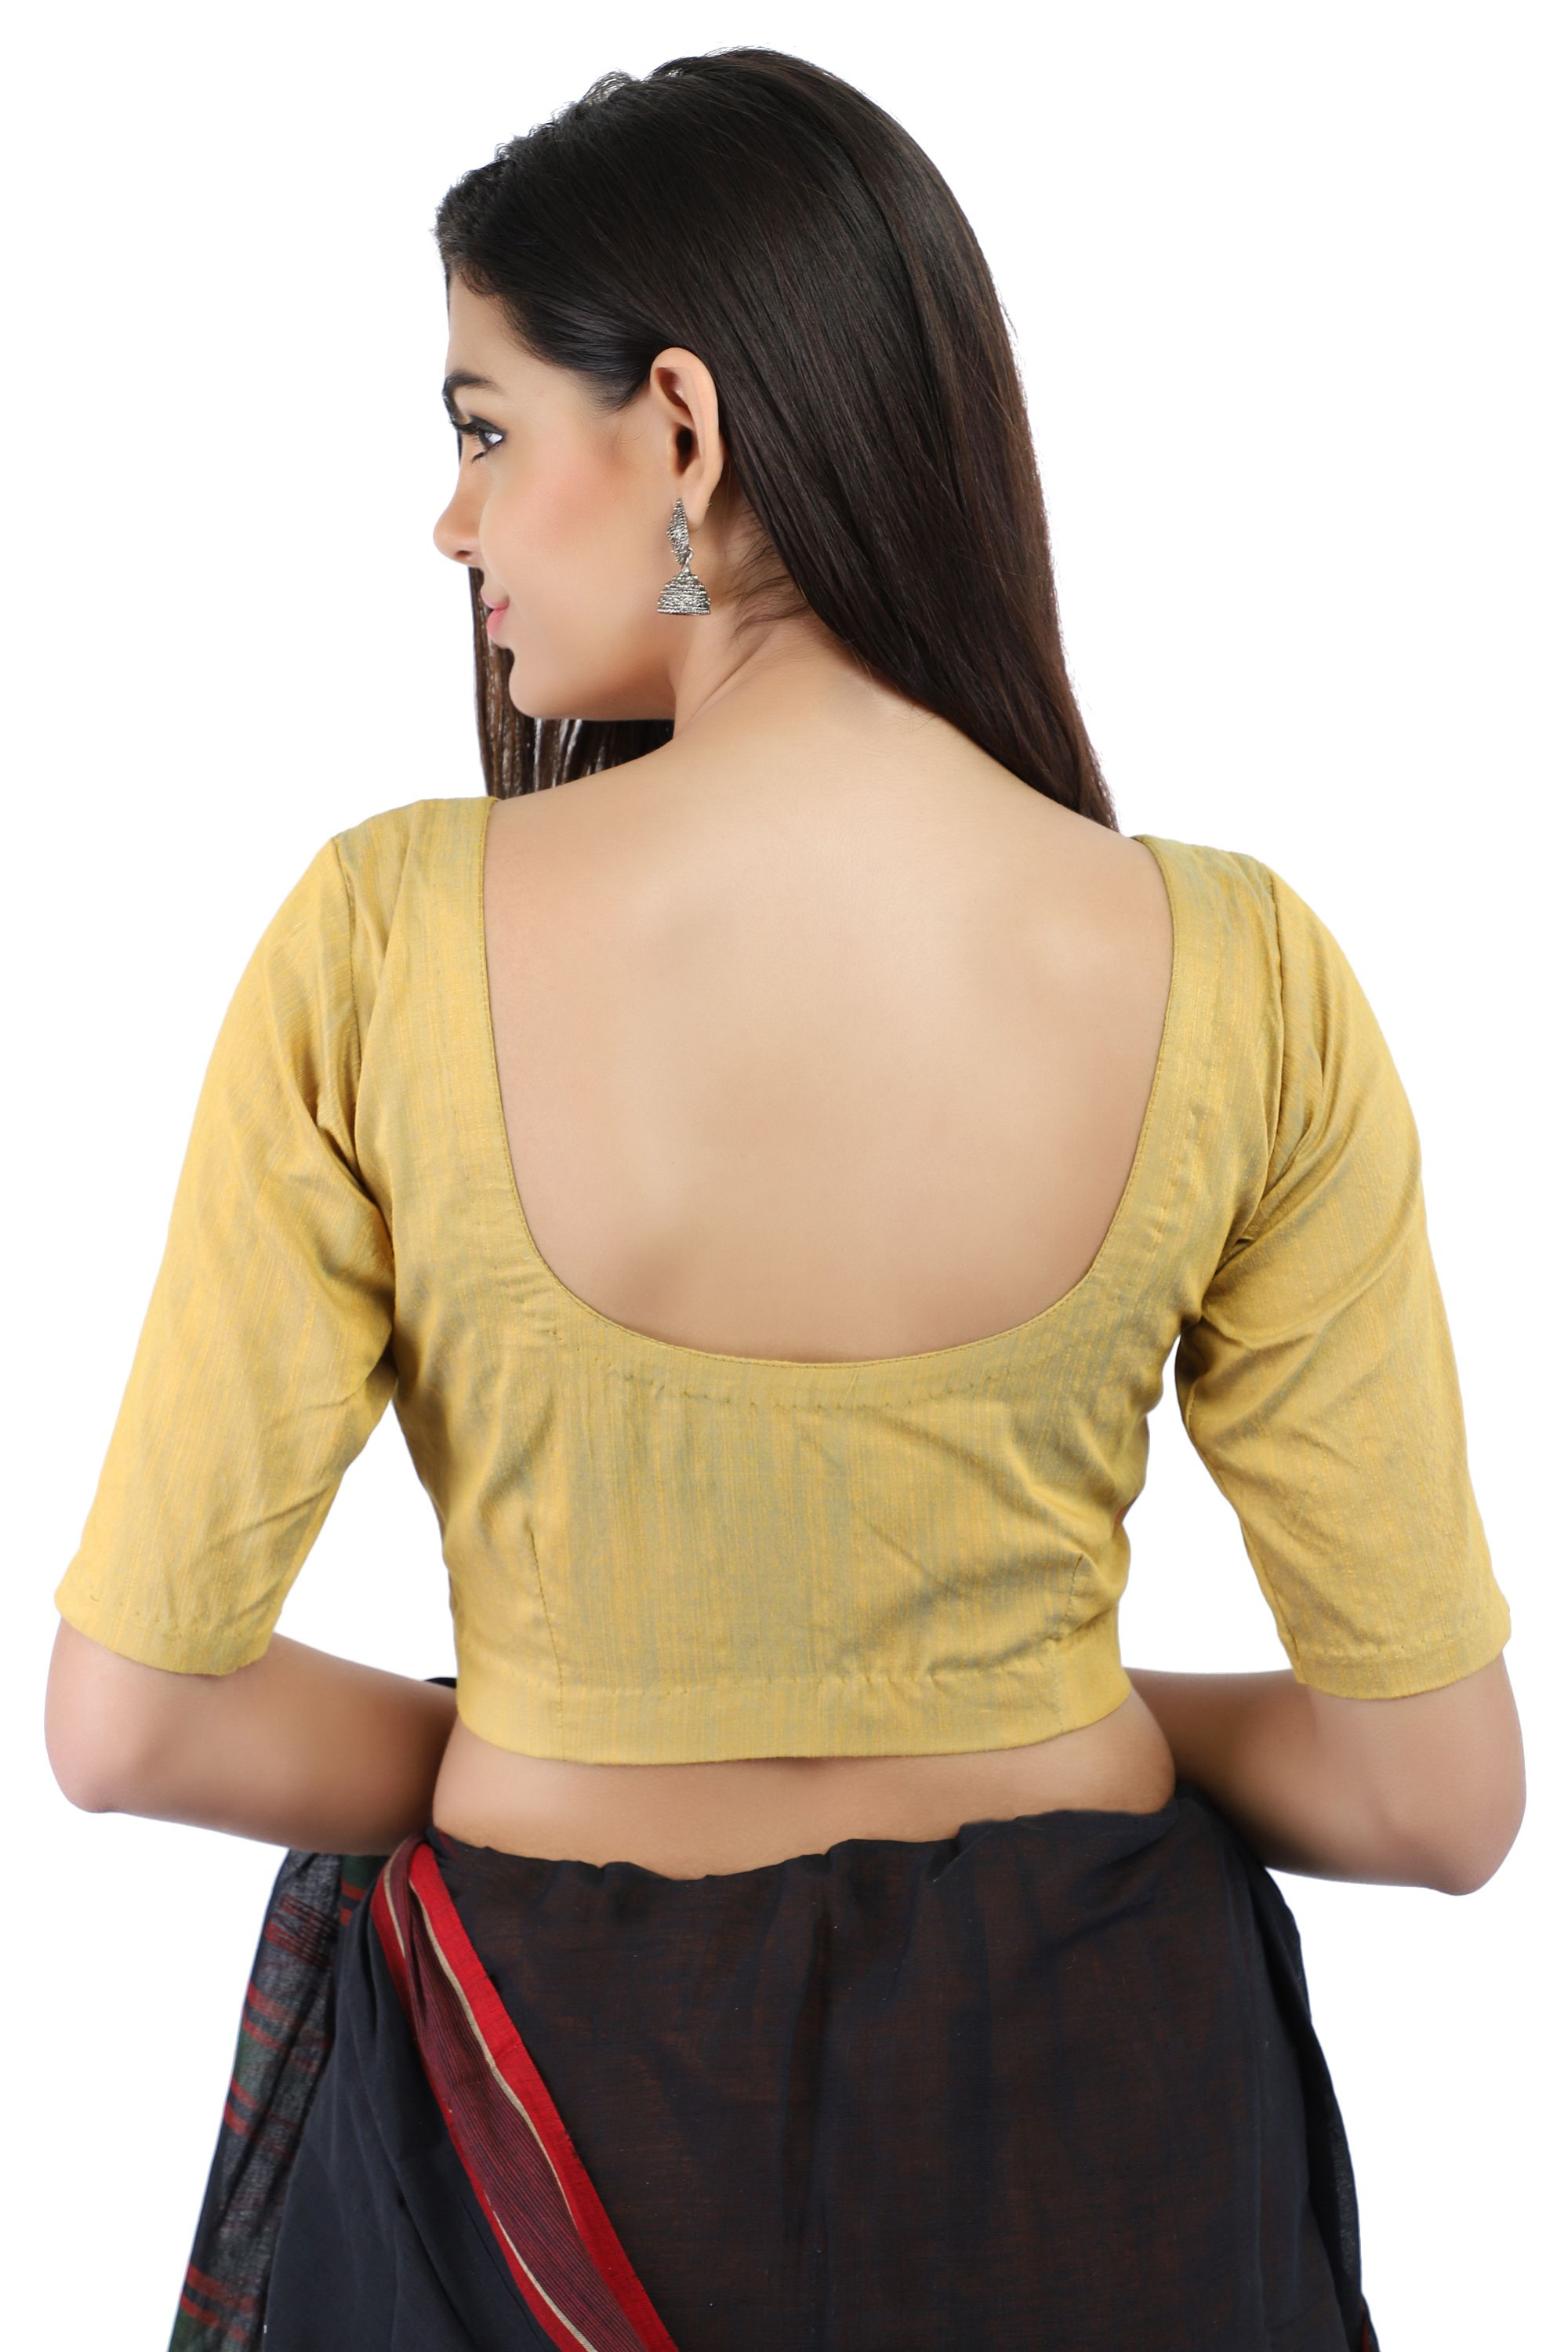 Silk Slub Yellow and Blue Dual Tone Non-Padded Blouse in V-Neck With Front Hook Closure 2